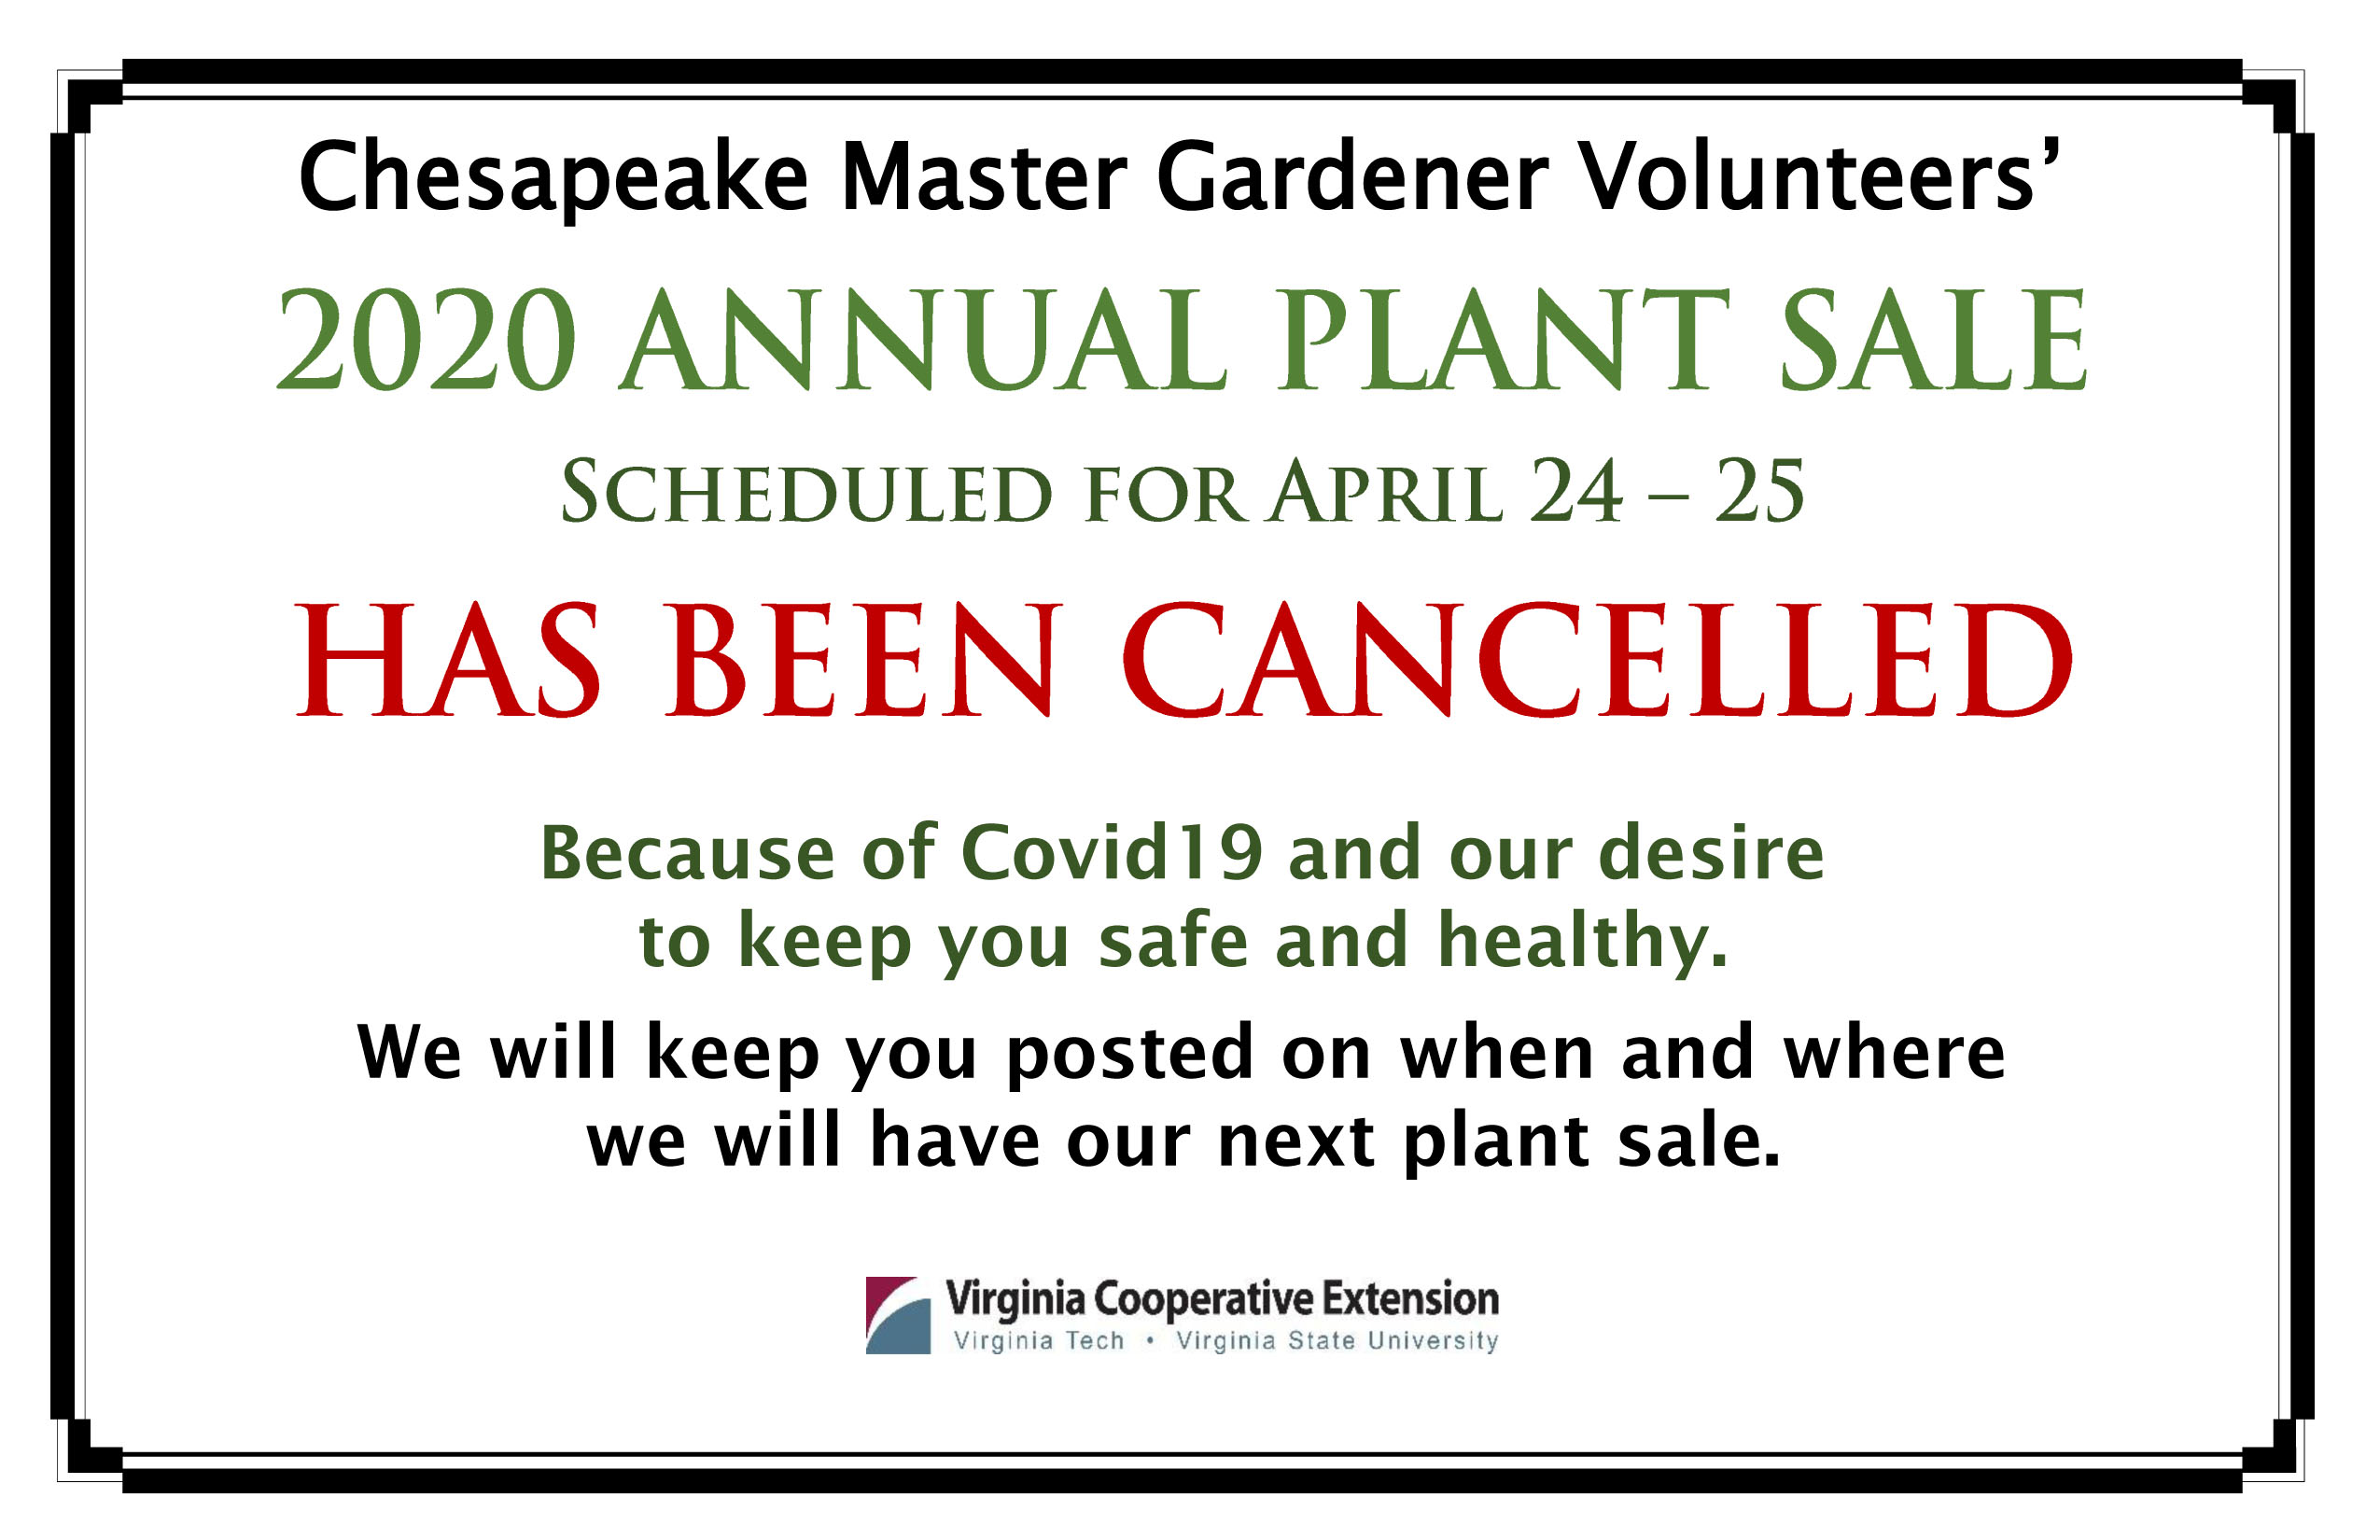 Plant Sale Cancelled